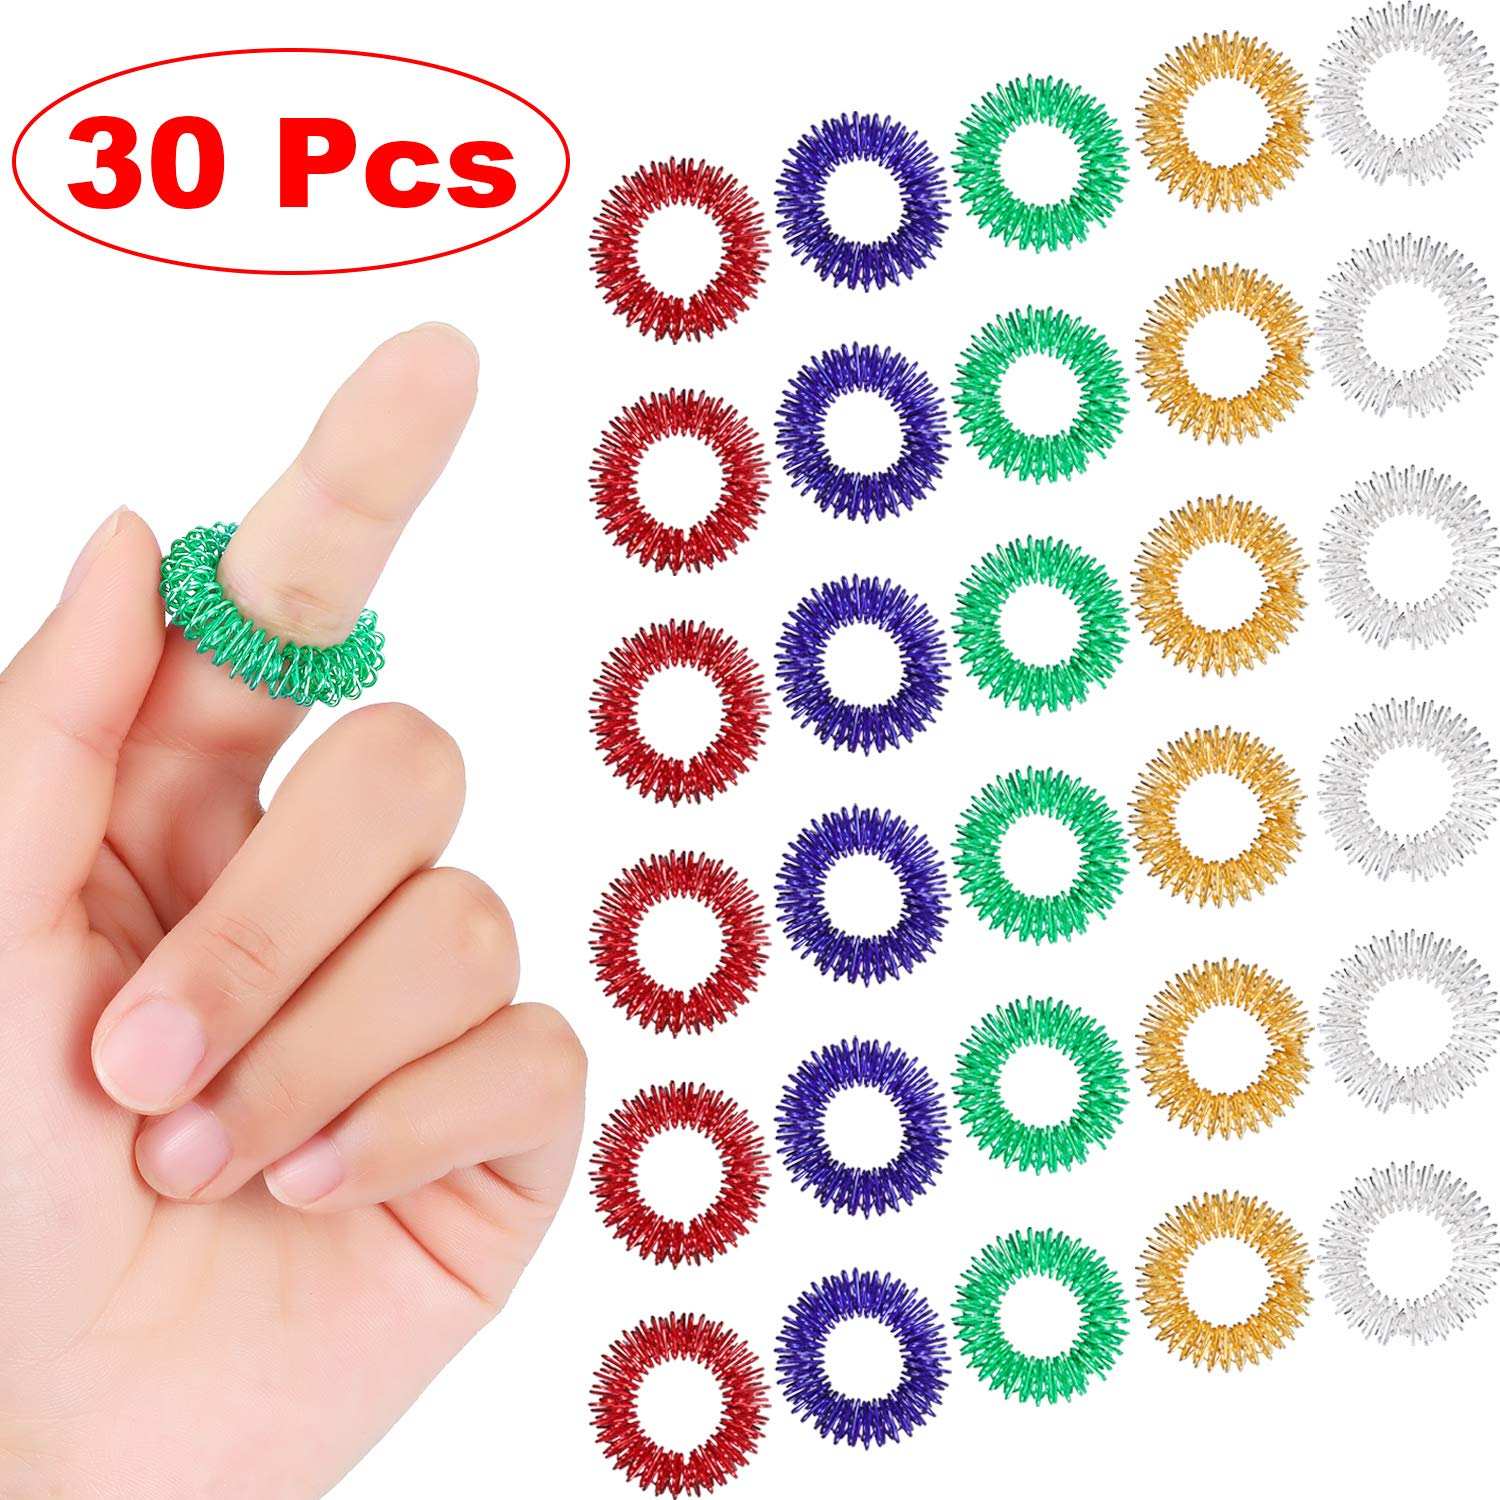 30PCS Spiky Sensory Finger Rings, Spiky Finger Ring/Acupressure Ring Set For Teens, Adults, Silent Stress Reducer And Massager